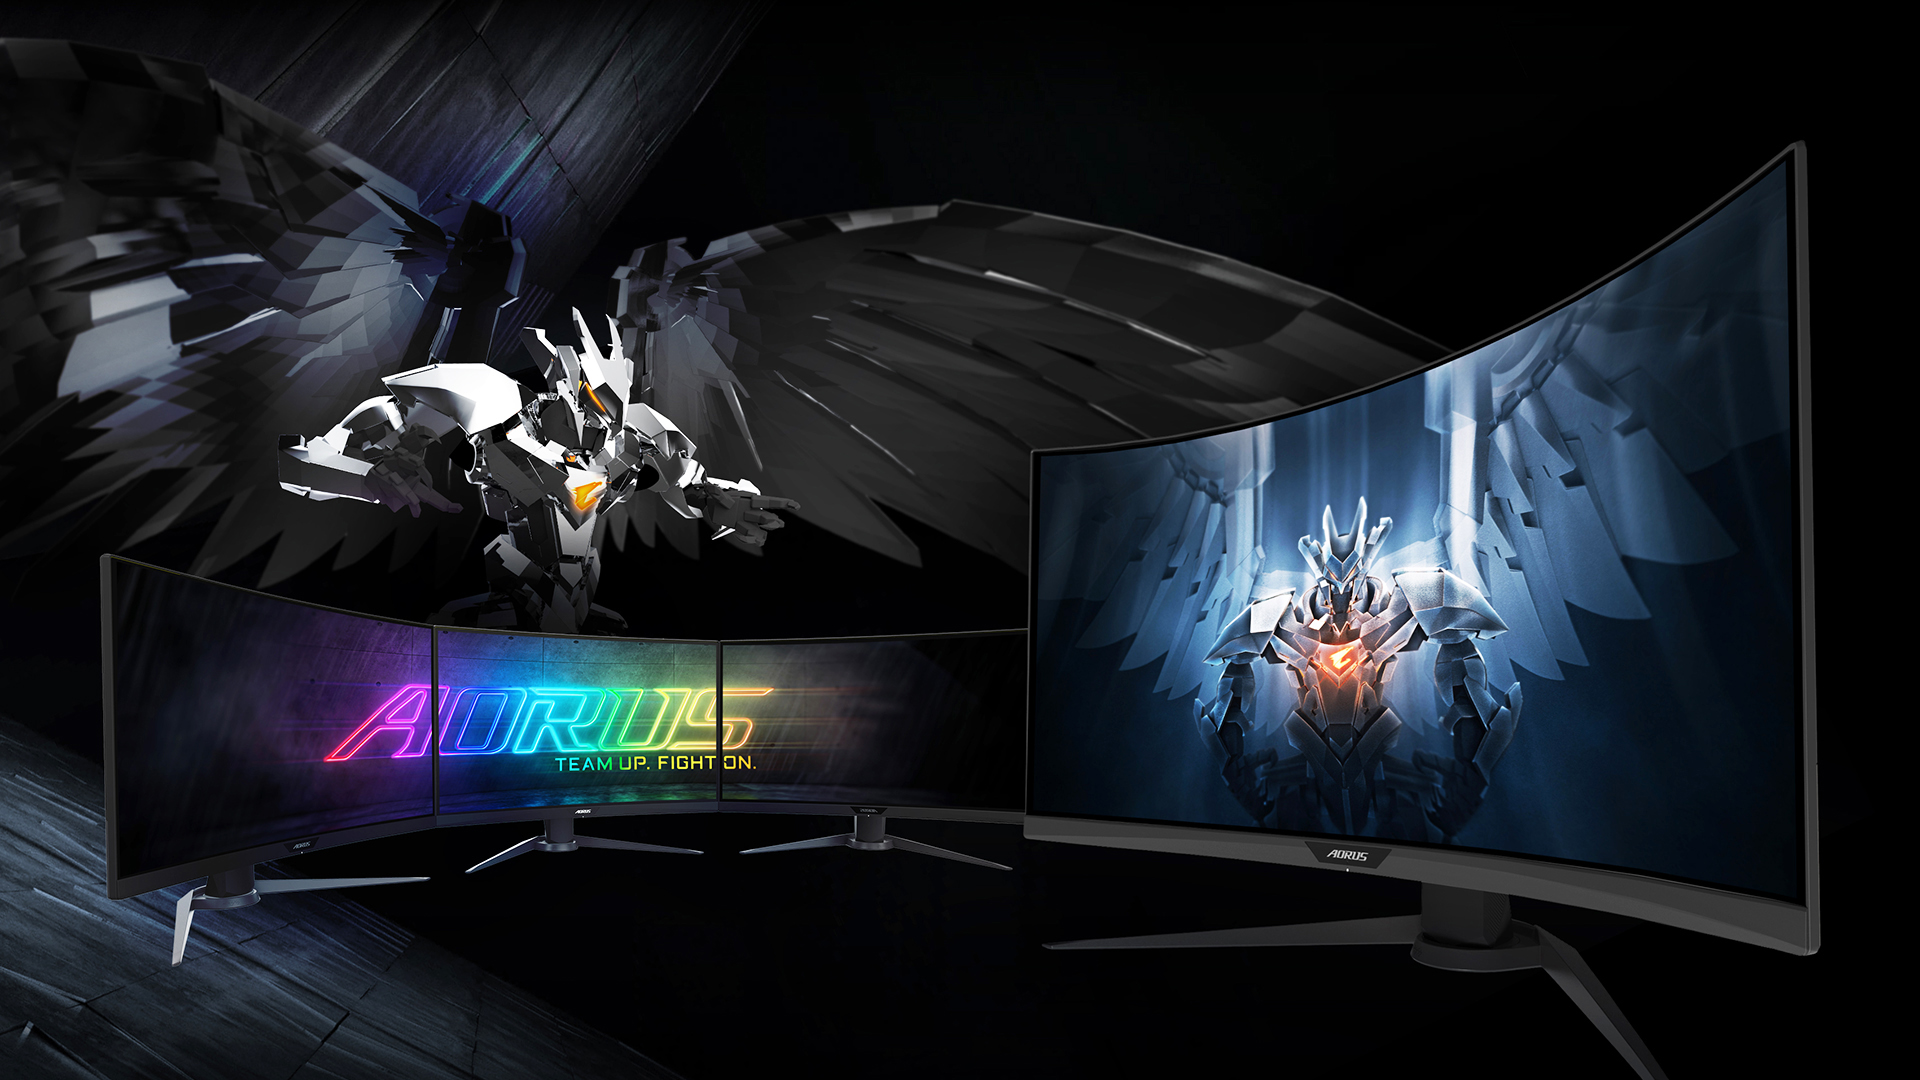 The Gigabyte Aorus CV27Q has a higher refresh rate that any TVs out there.